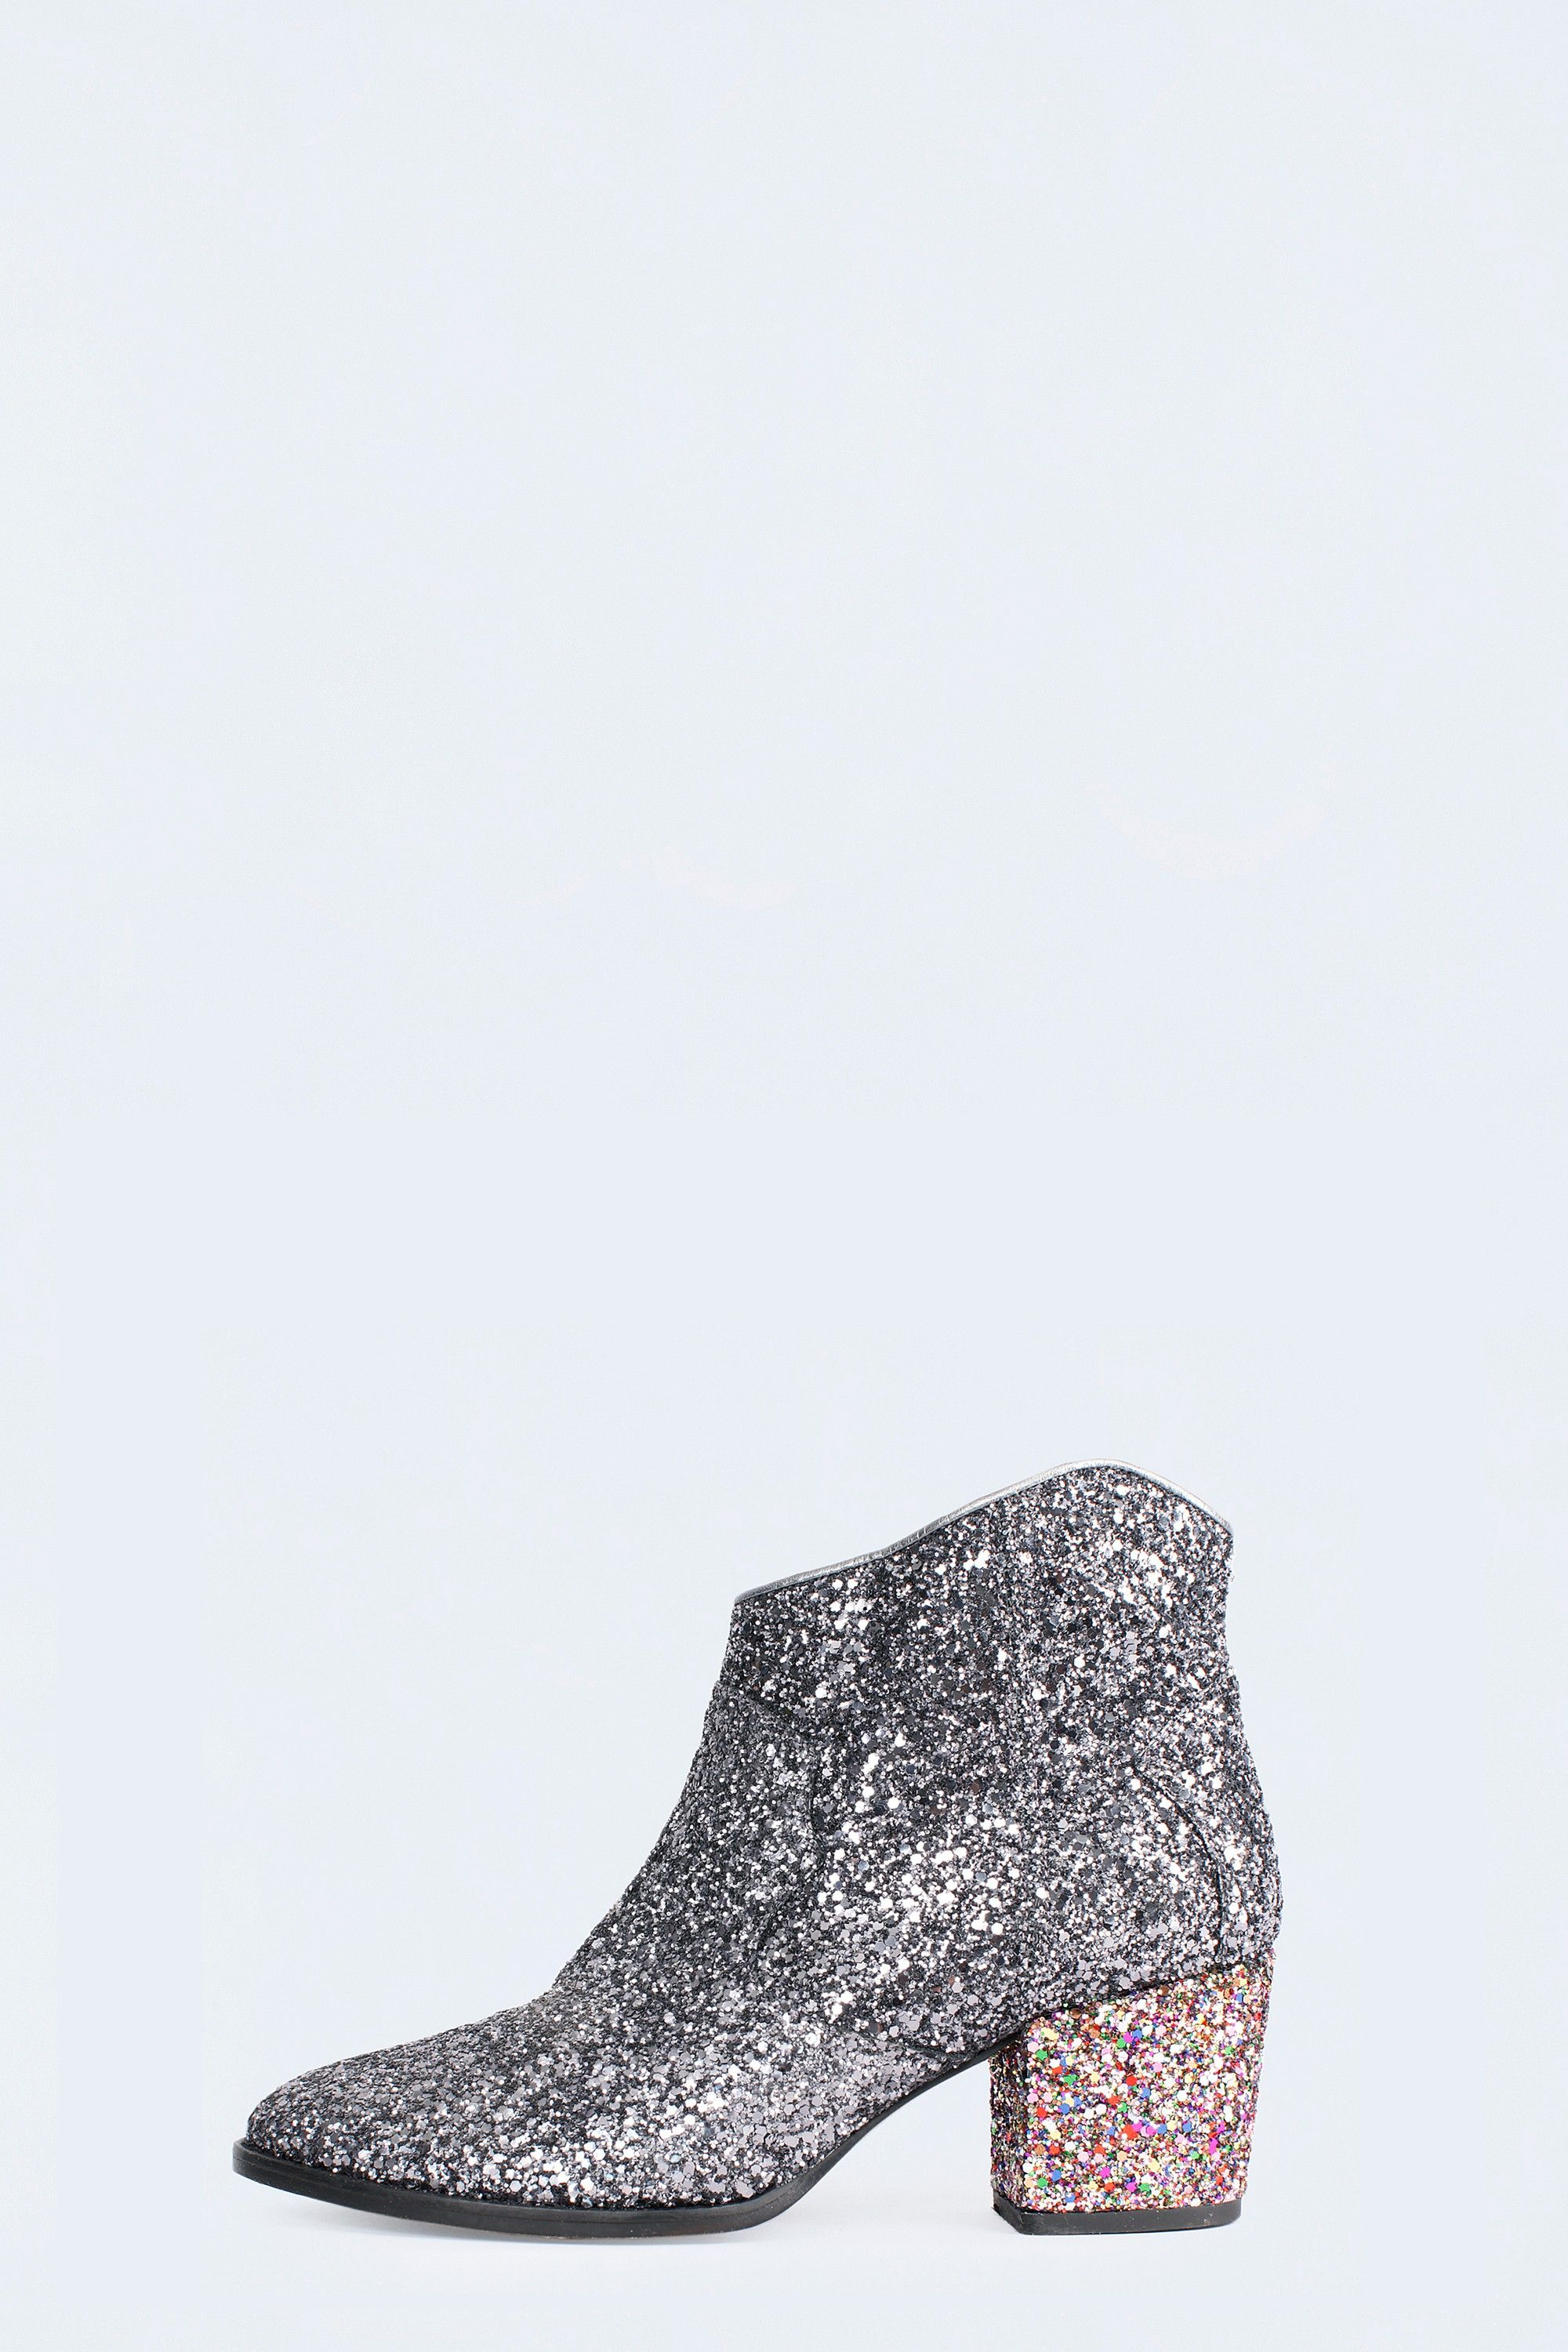 Zadig & Voltaire MOLLY HEEL - Ankle boots - gris FfaWUkE1